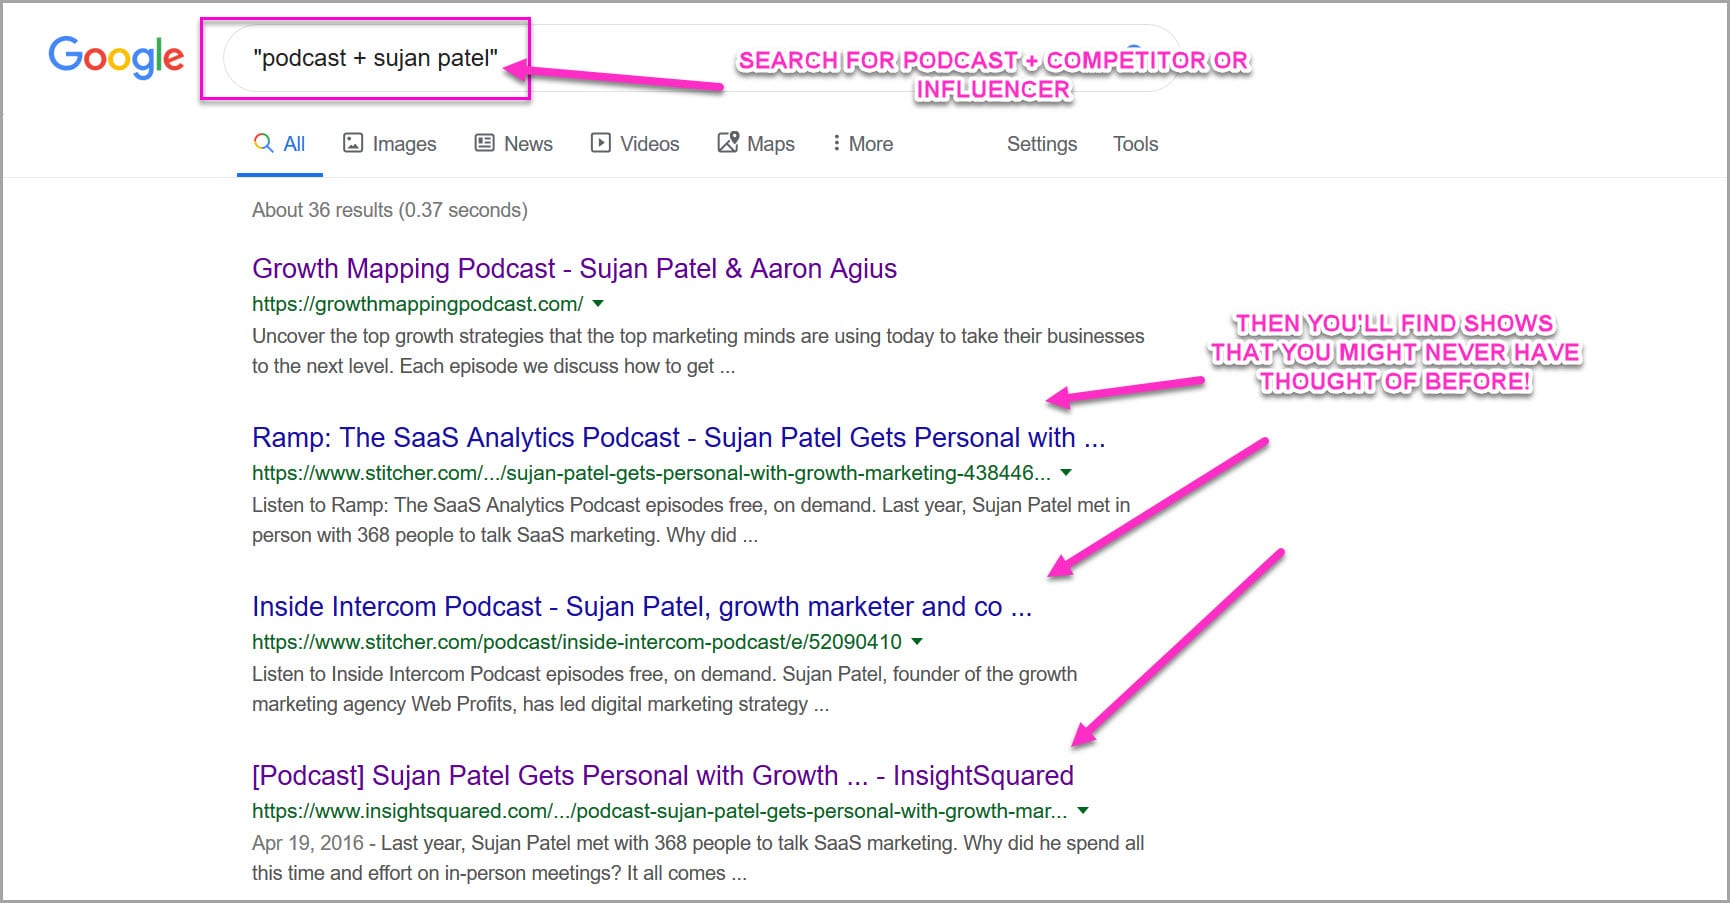 Search for competitors podcast appearances, so you can reverse engineer them